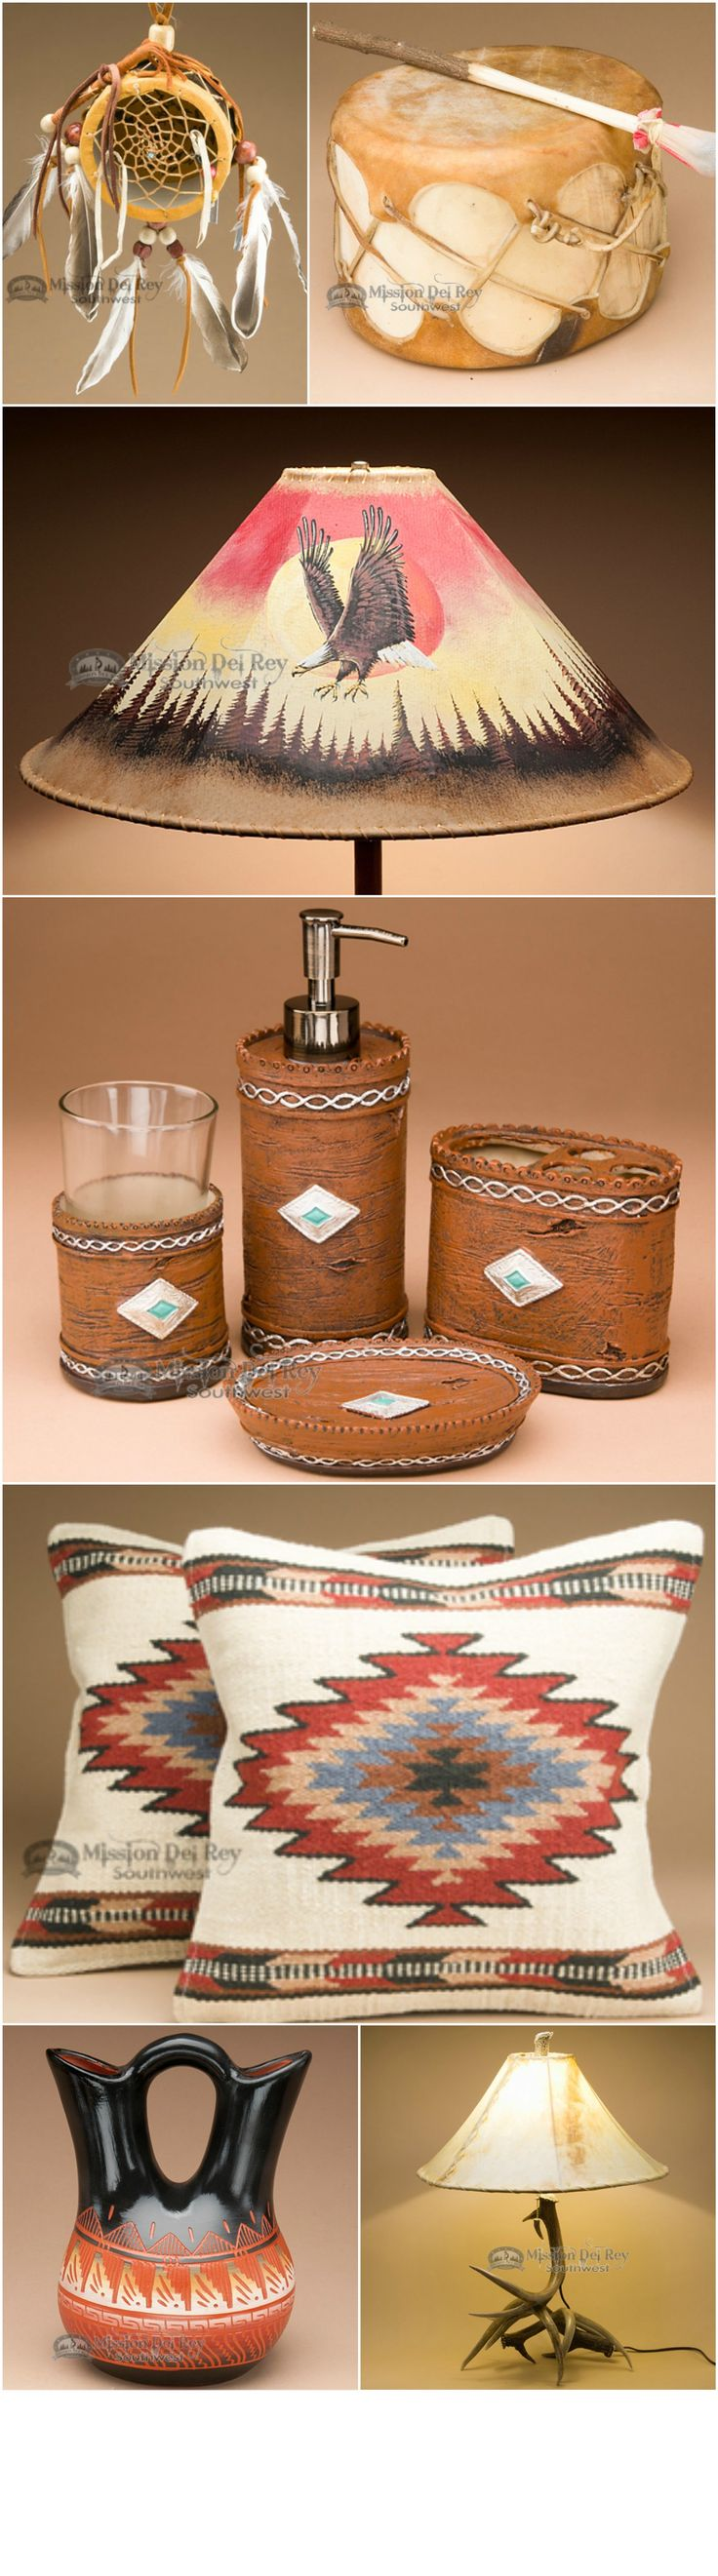 Rustic decor is a very popular choice in home decor.  You can achieve this look simply by adding a few key elements such as southwestern lamps and lamp shades, handcrafted drums, and Native American handcrafts.  See our great options in Southwest and rustic decor at http://www.missiondelrey.com/